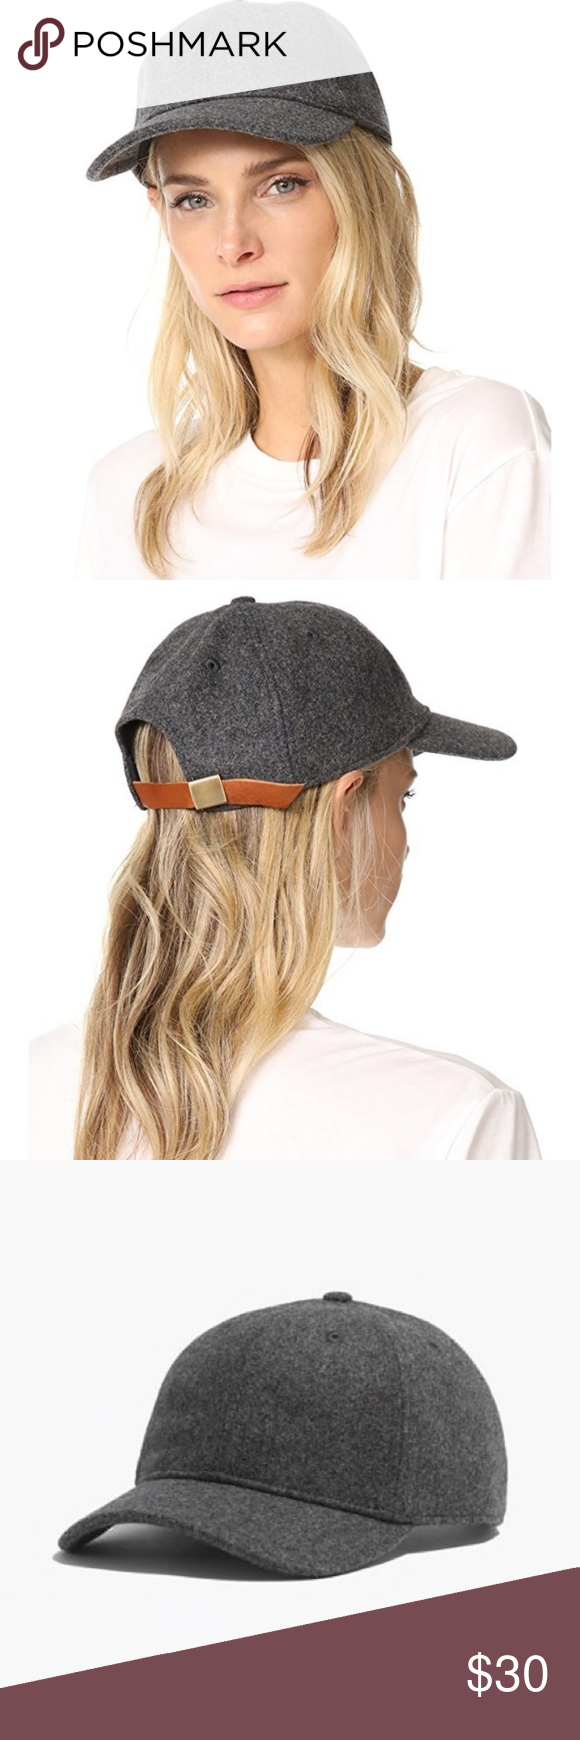 Madewell Wool Blend Baseball Cap in Heather Gray New with tags! Ships  quickly from a d44615d20043